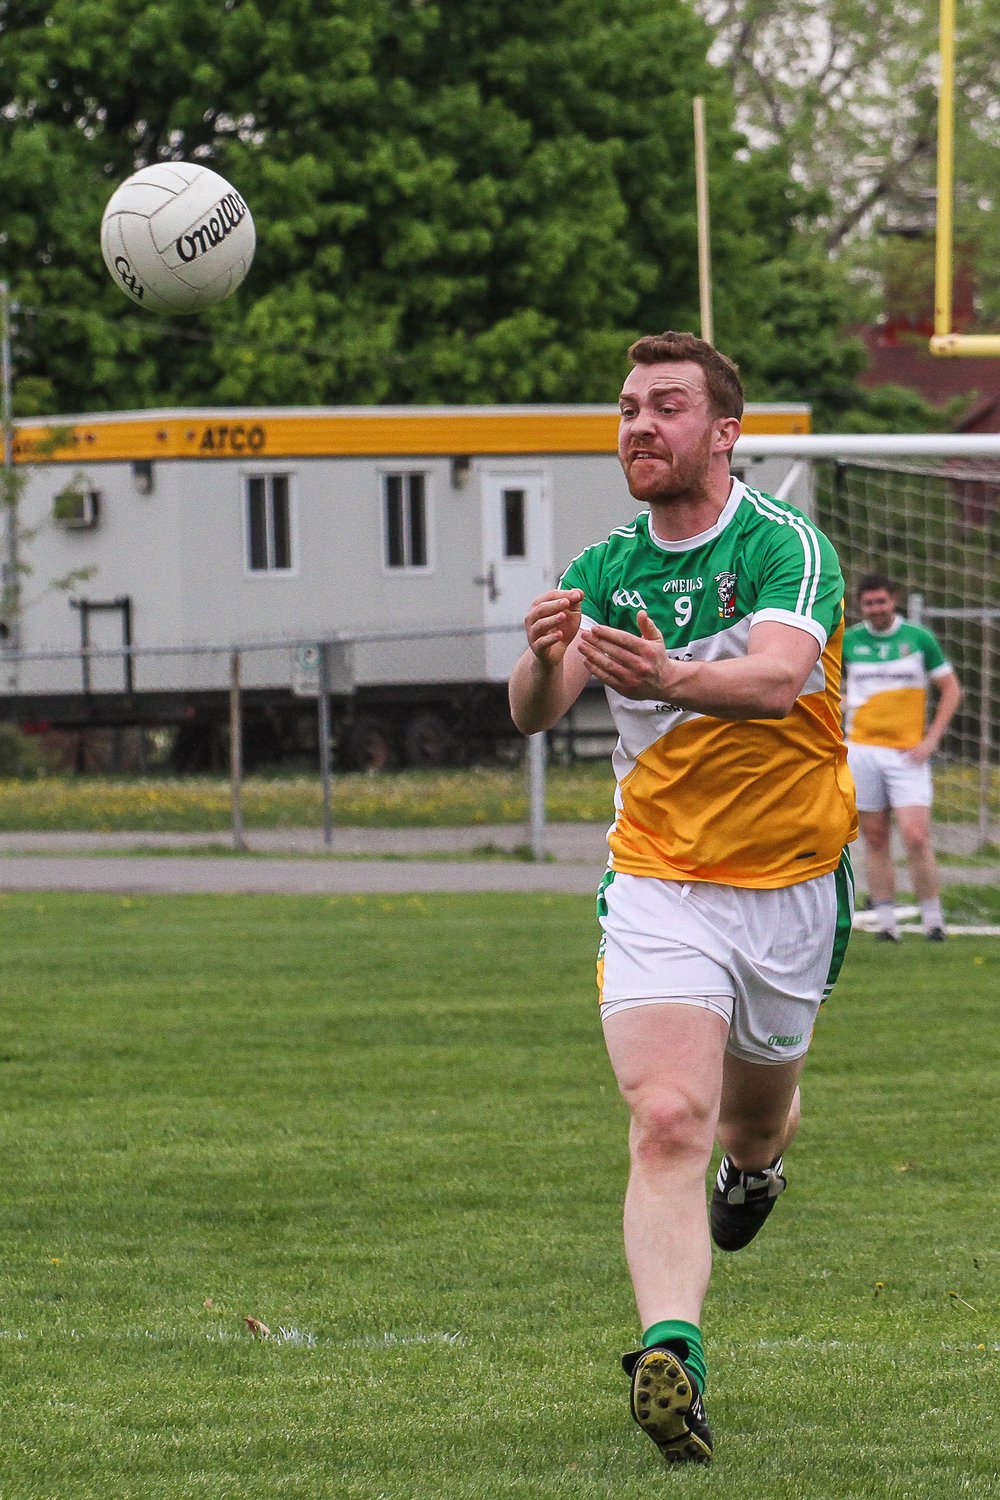 Toronto Gaels Gaelic Football Club - Montreal May Tournament 2015 - ShamrocksvsGaels(12of30).jpg